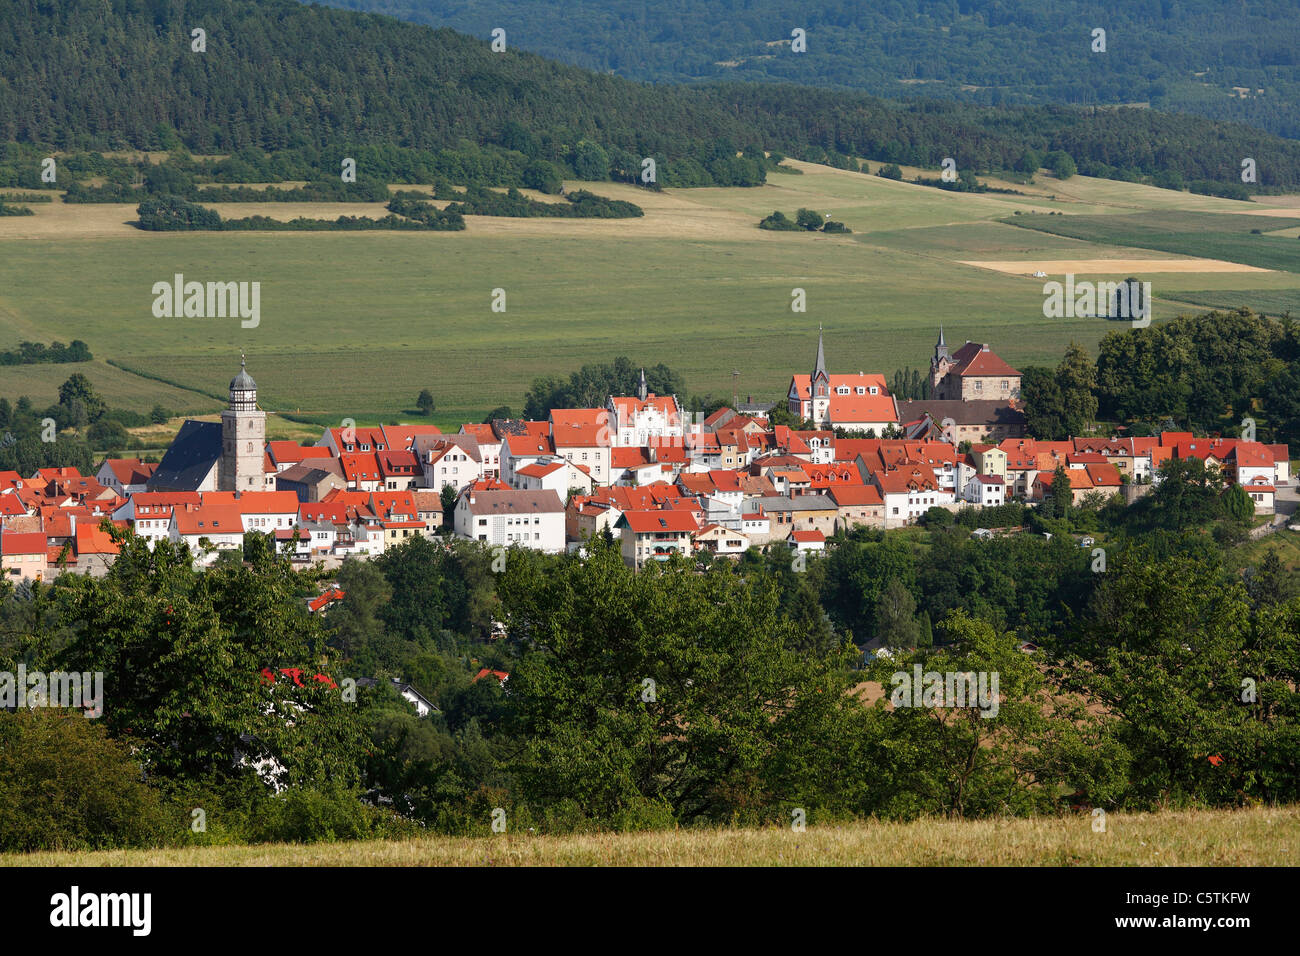 Germany, Thuringia, Rhoen, View of geisa town - Stock Image